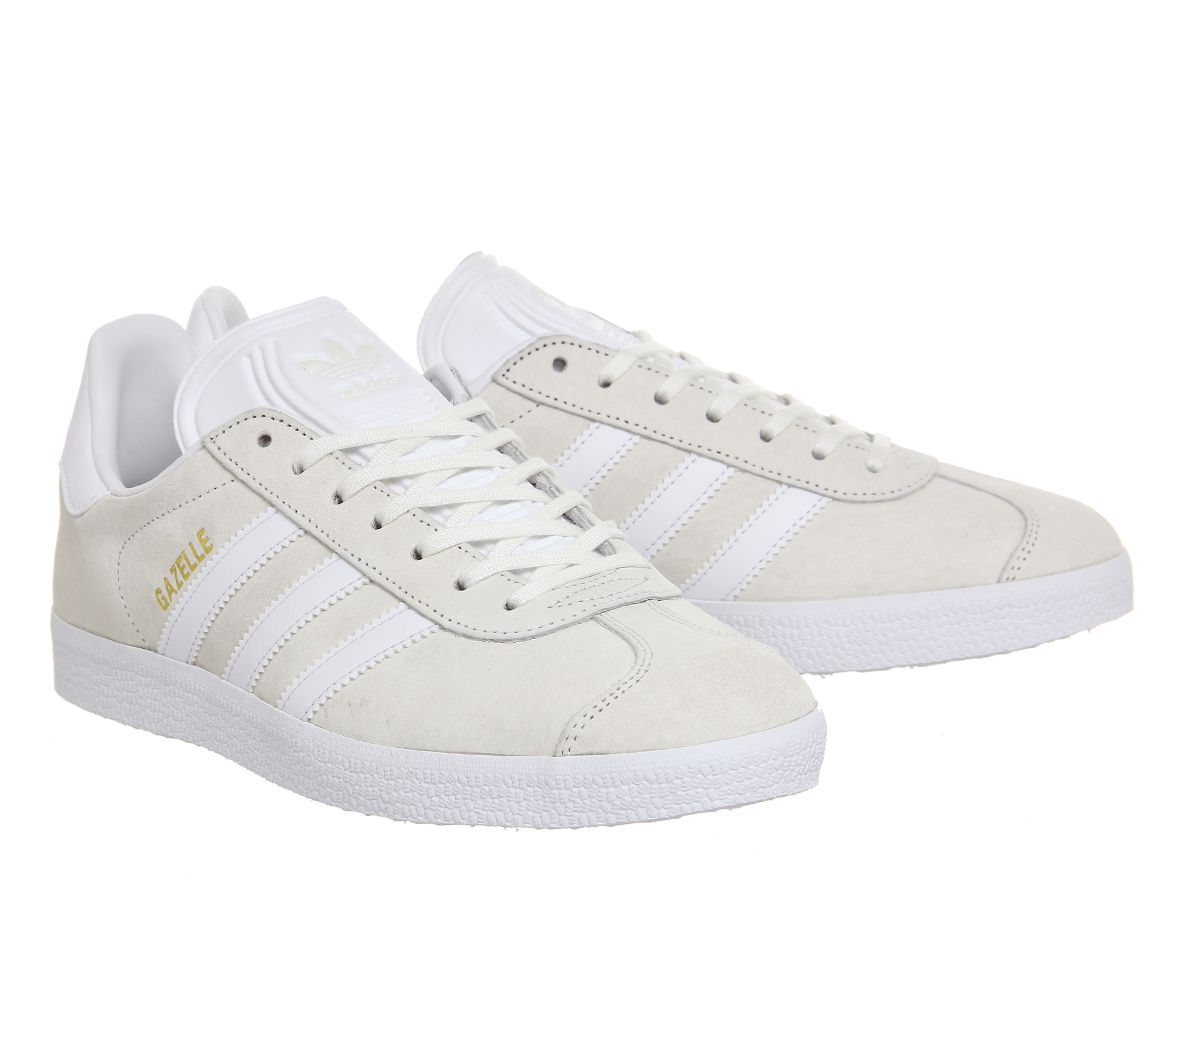 adidas Gazelles in Off White suede with White sole